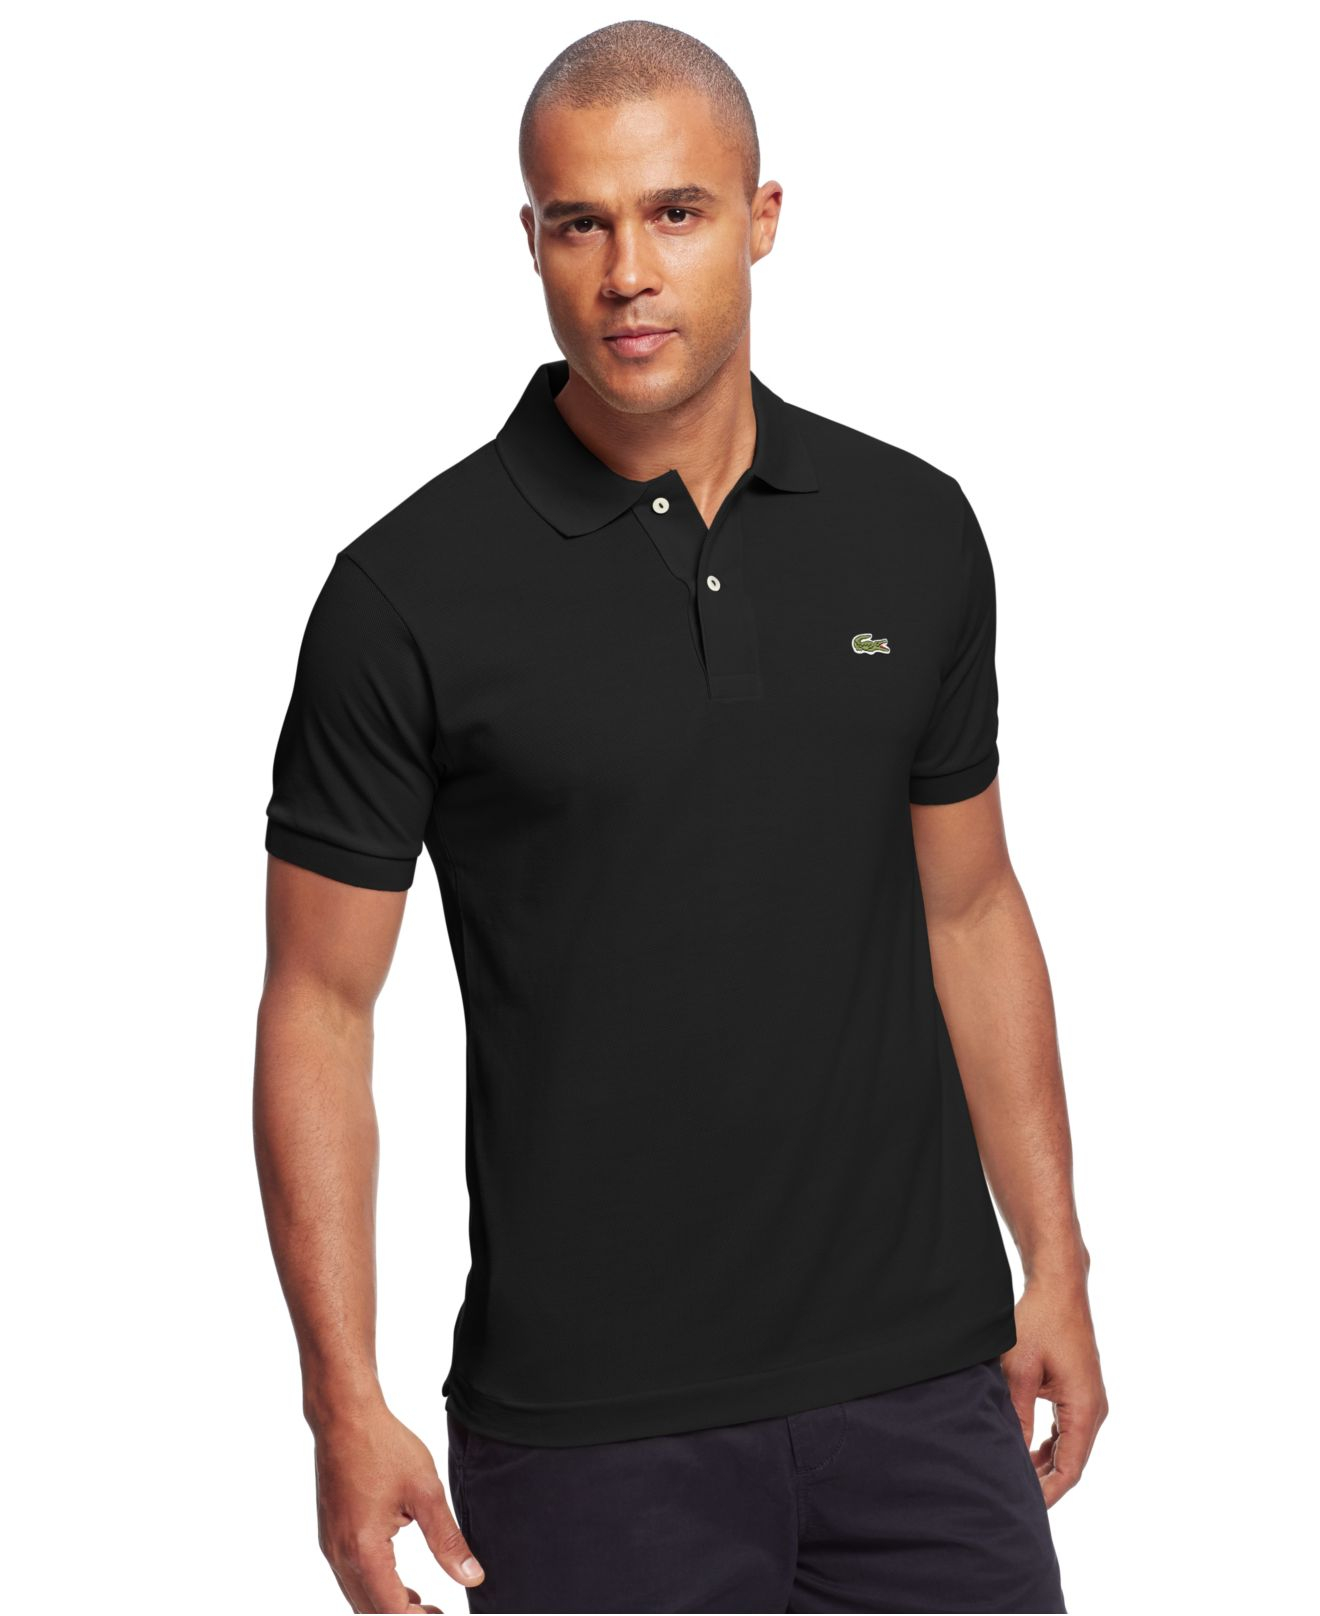 Lacoste classic pique polo shirt in black for men lyst for Boys lacoste polo shirt